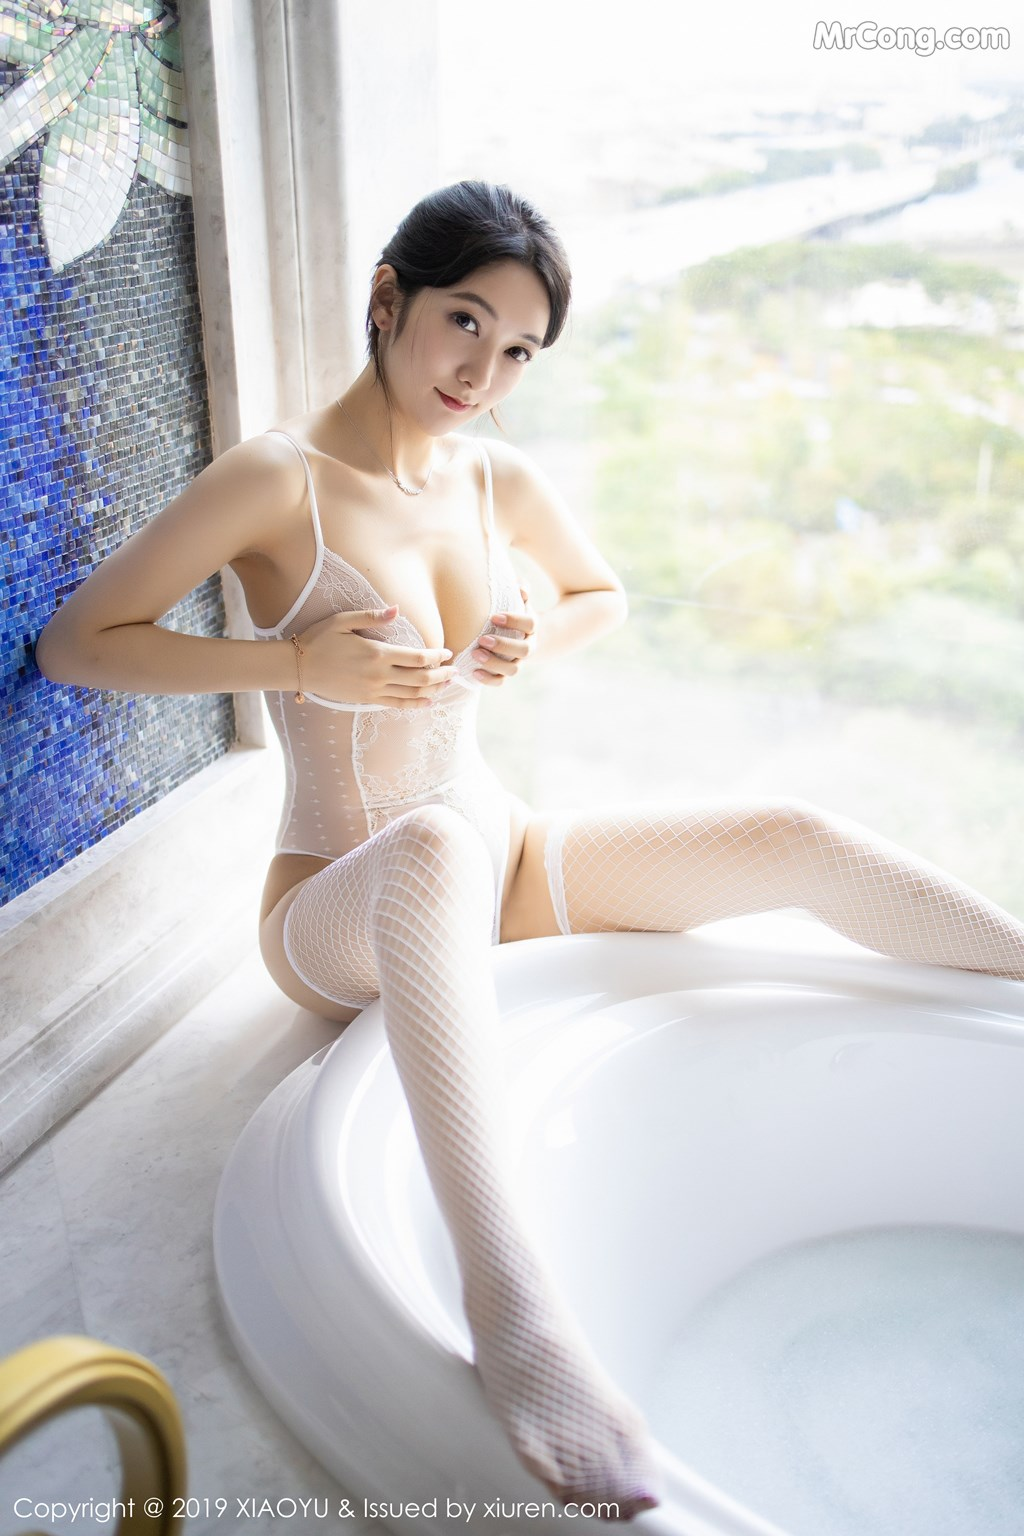 Image XiaoYu-Vol.223-Xiao-Reba-Angela-MrCong.com-008 in post XiaoYu Vol.223: Xiao Reba (Angela小热巴) (64 ảnh)